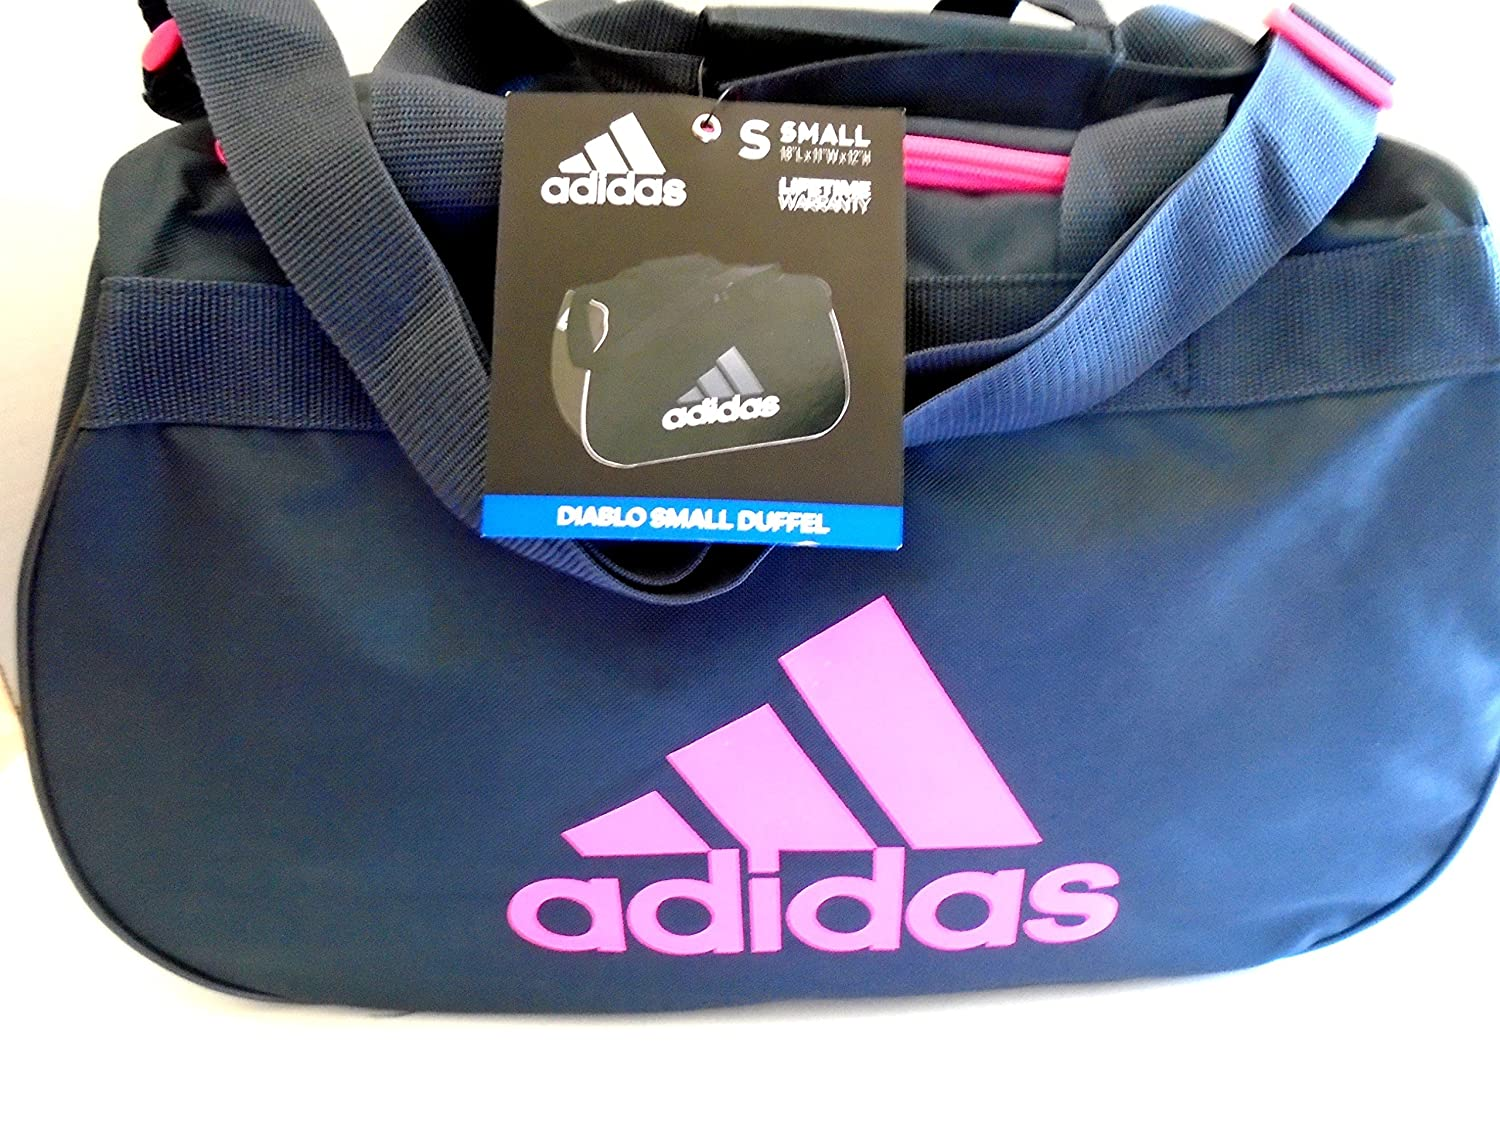 e8587fab5ccd adidas Diablo II Gear Up Small Gym Travel All Sports Gear Duffle Bag  (Mercury Grey Solar Pink Logo)  Amazon.co.uk  Sports   Outdoors